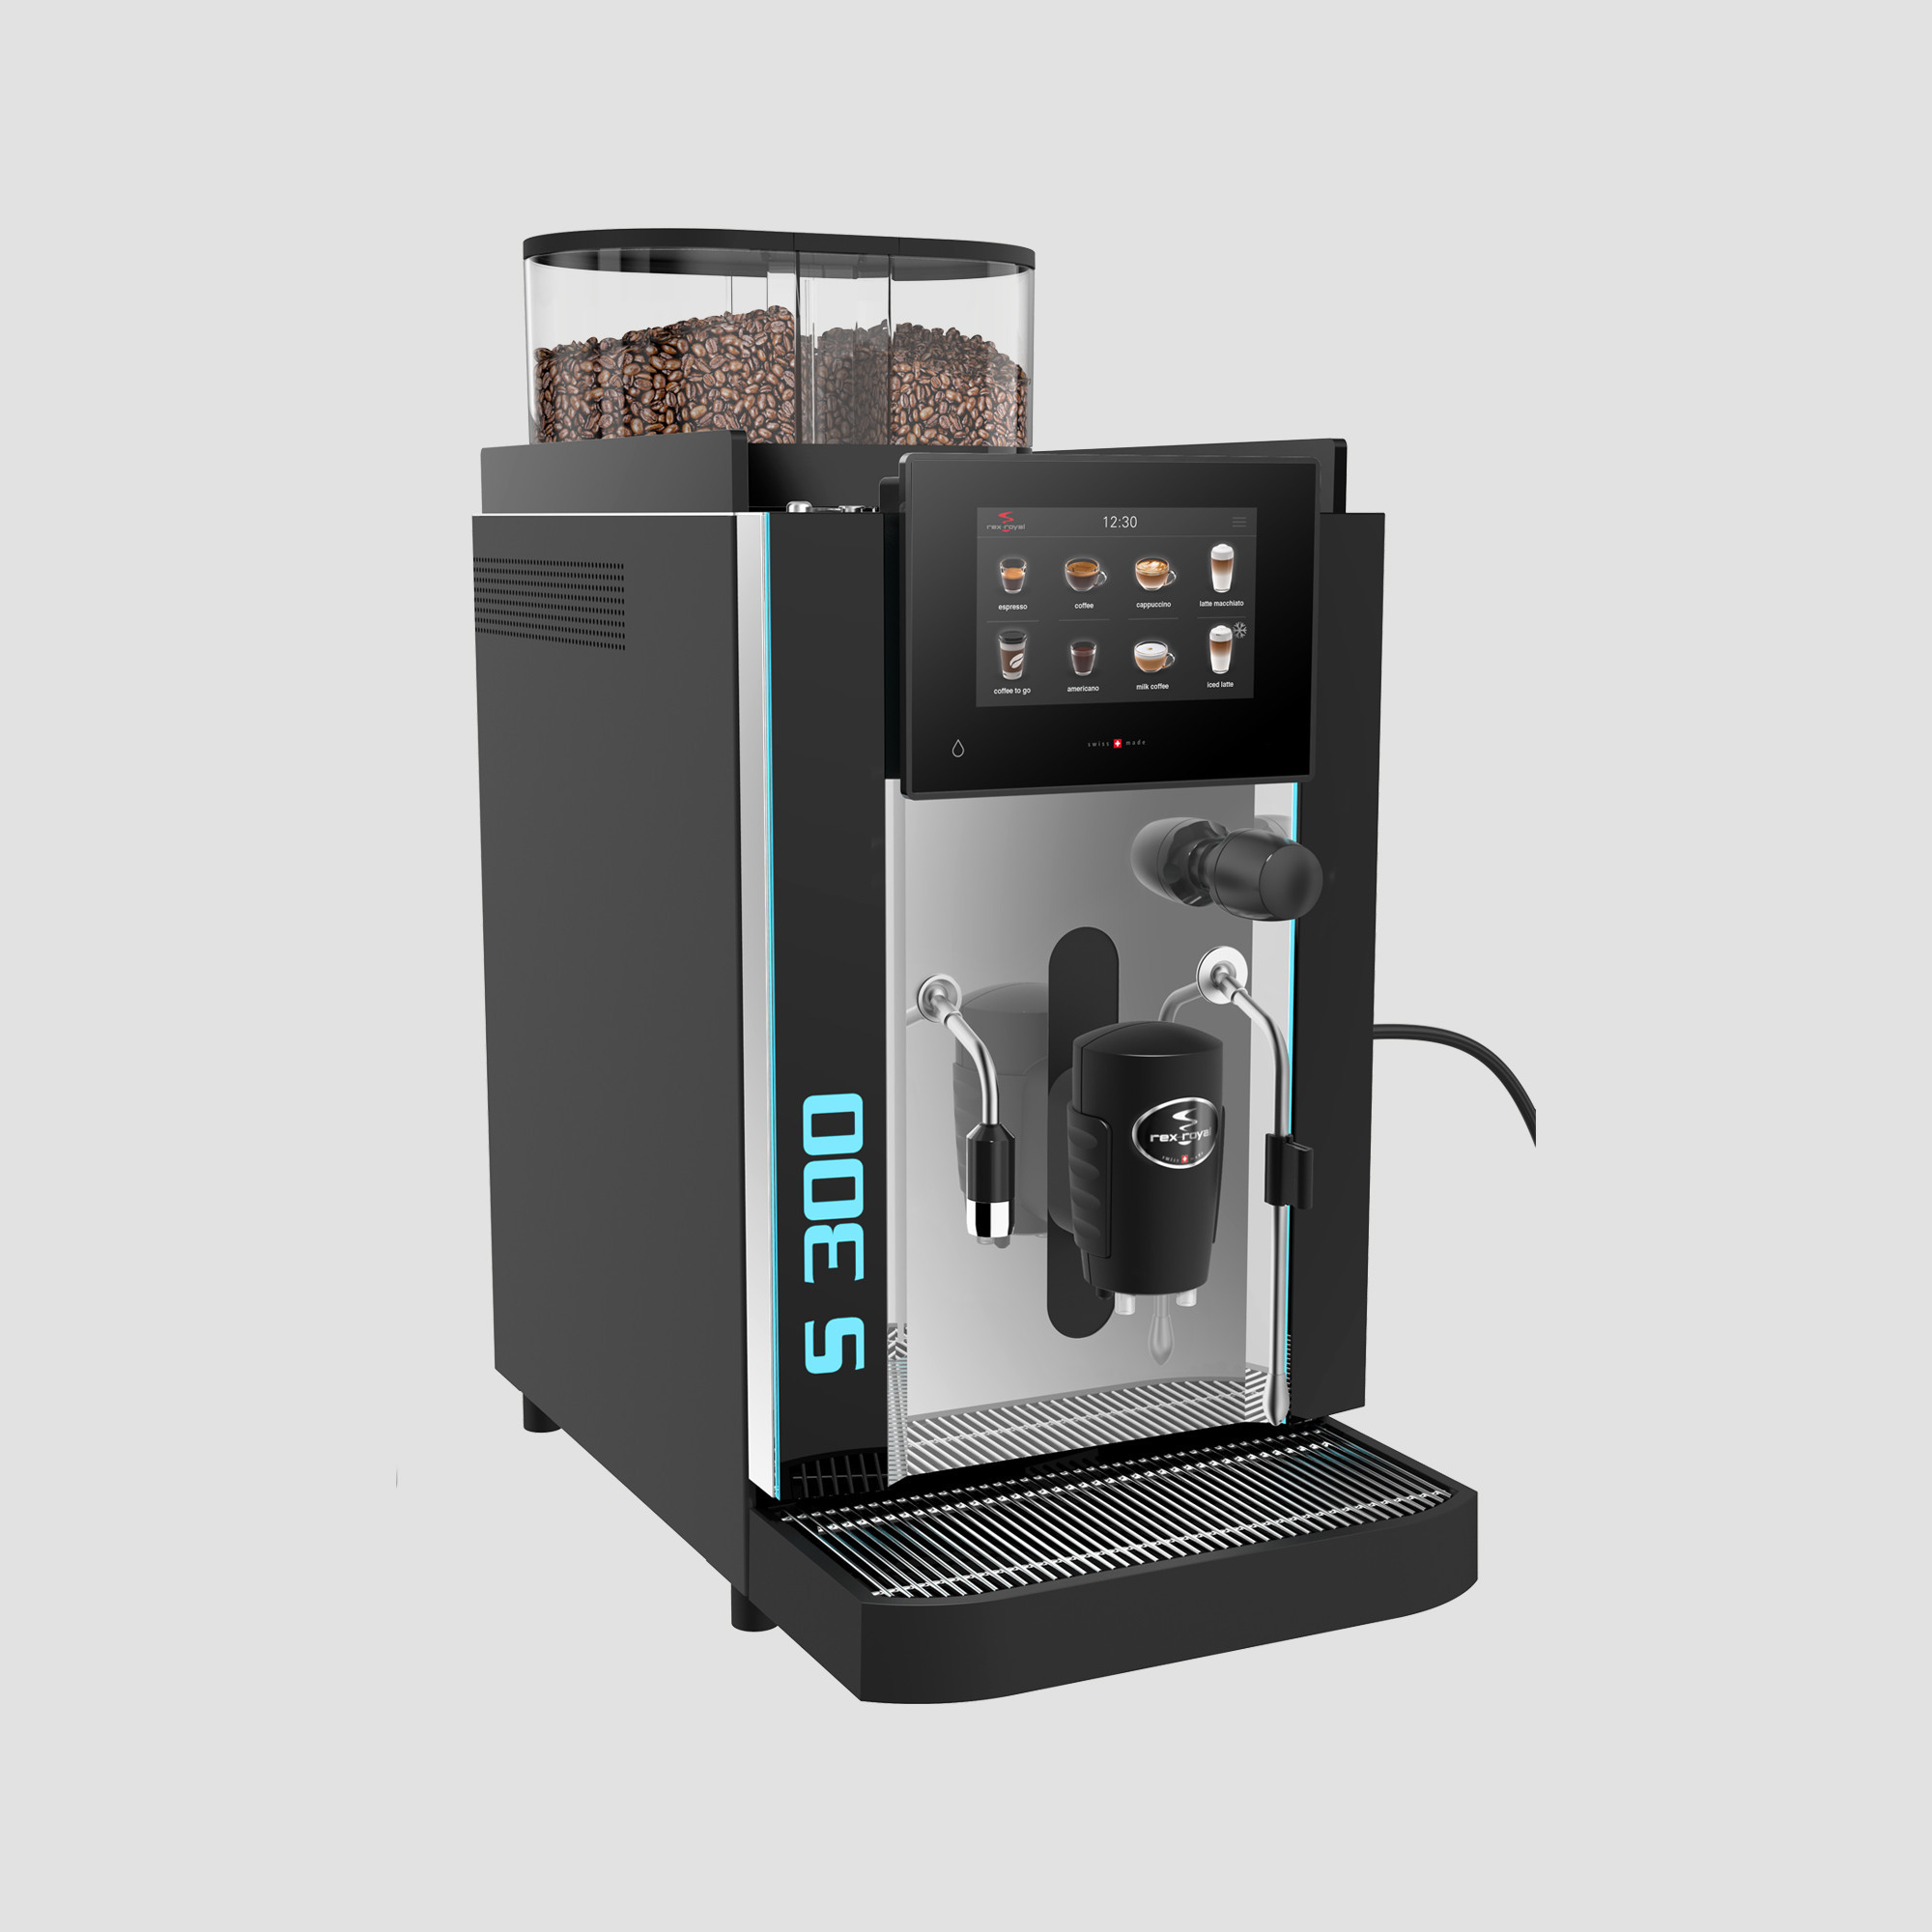 [REXROYAL] Automatic Coffee Machines_S300 MCST (Touch Screen)